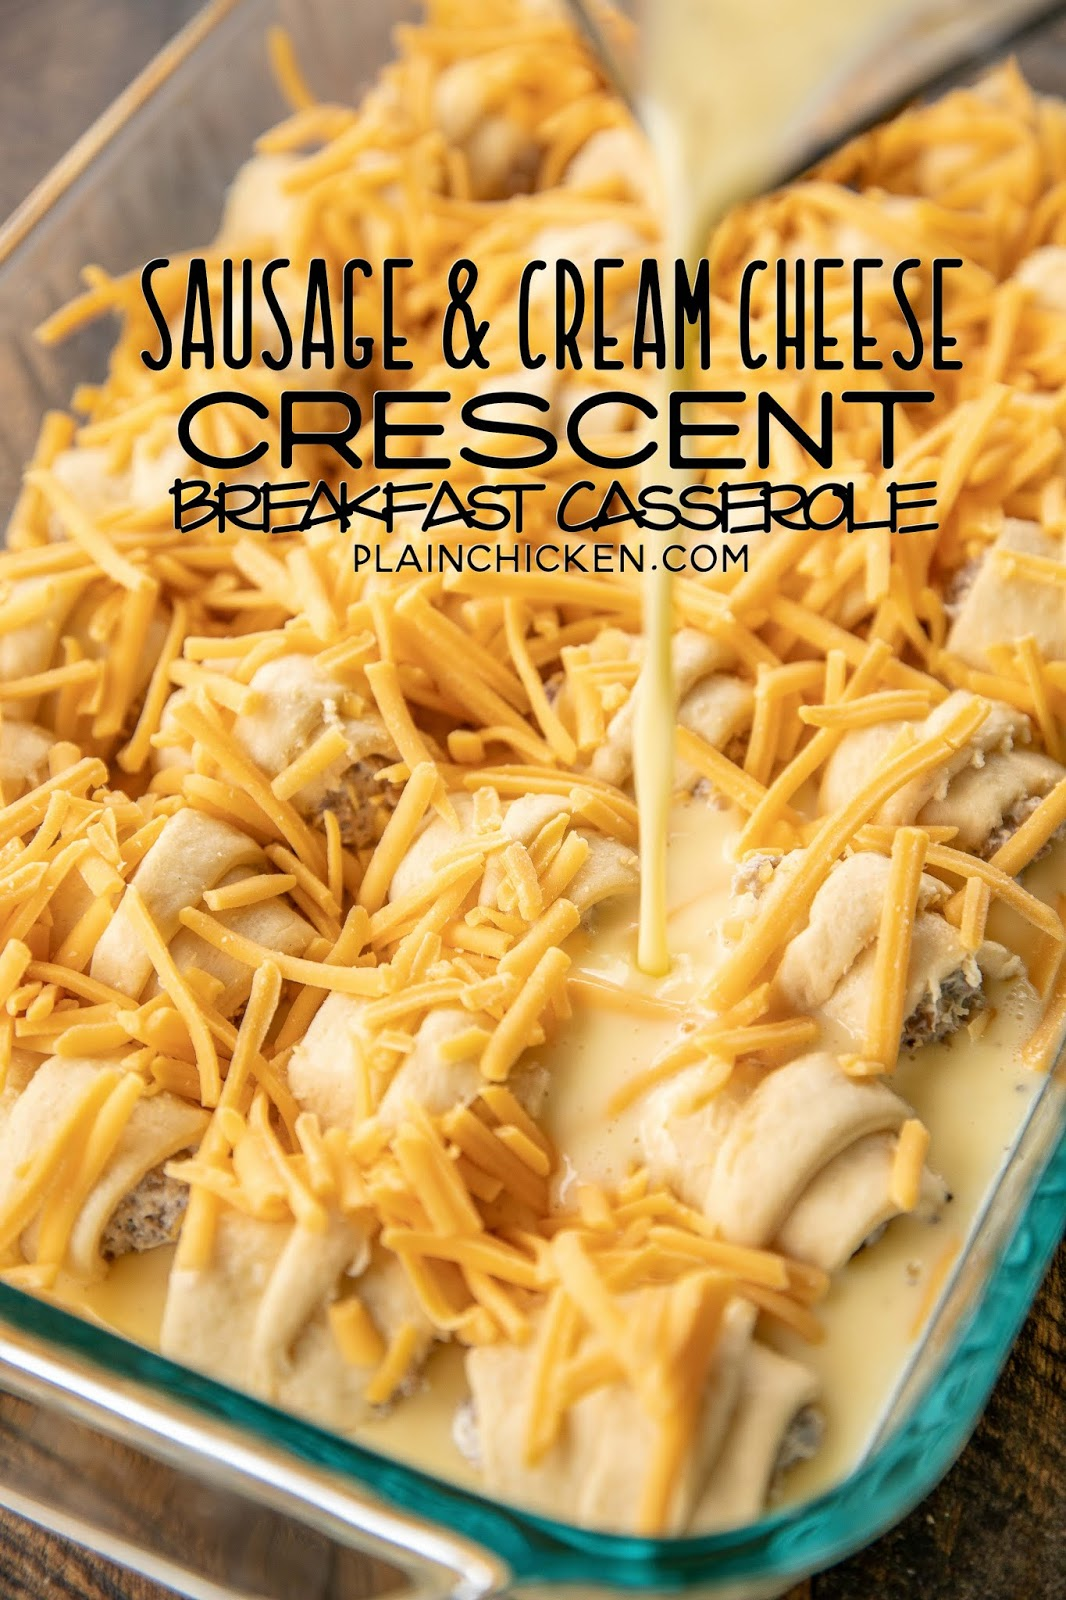 Sausage & Cream Cheese Crescent Breakfast Casserole - the BEST breakfast casserole in the world!!! Crescent rolls stuffed with sausage and cream cheese then topped with an egg mixture and bake. All of my favorites in on dish!!! Can make in advance and bake the next morning. Crescent rolls, sausage, cream cheese, cheddar cheese, eggs, milk, salt and pepper. Everyone LOVES this easy breakfast casserole! #breakfast #breakfastcasserole #casserole #sausage #recipe